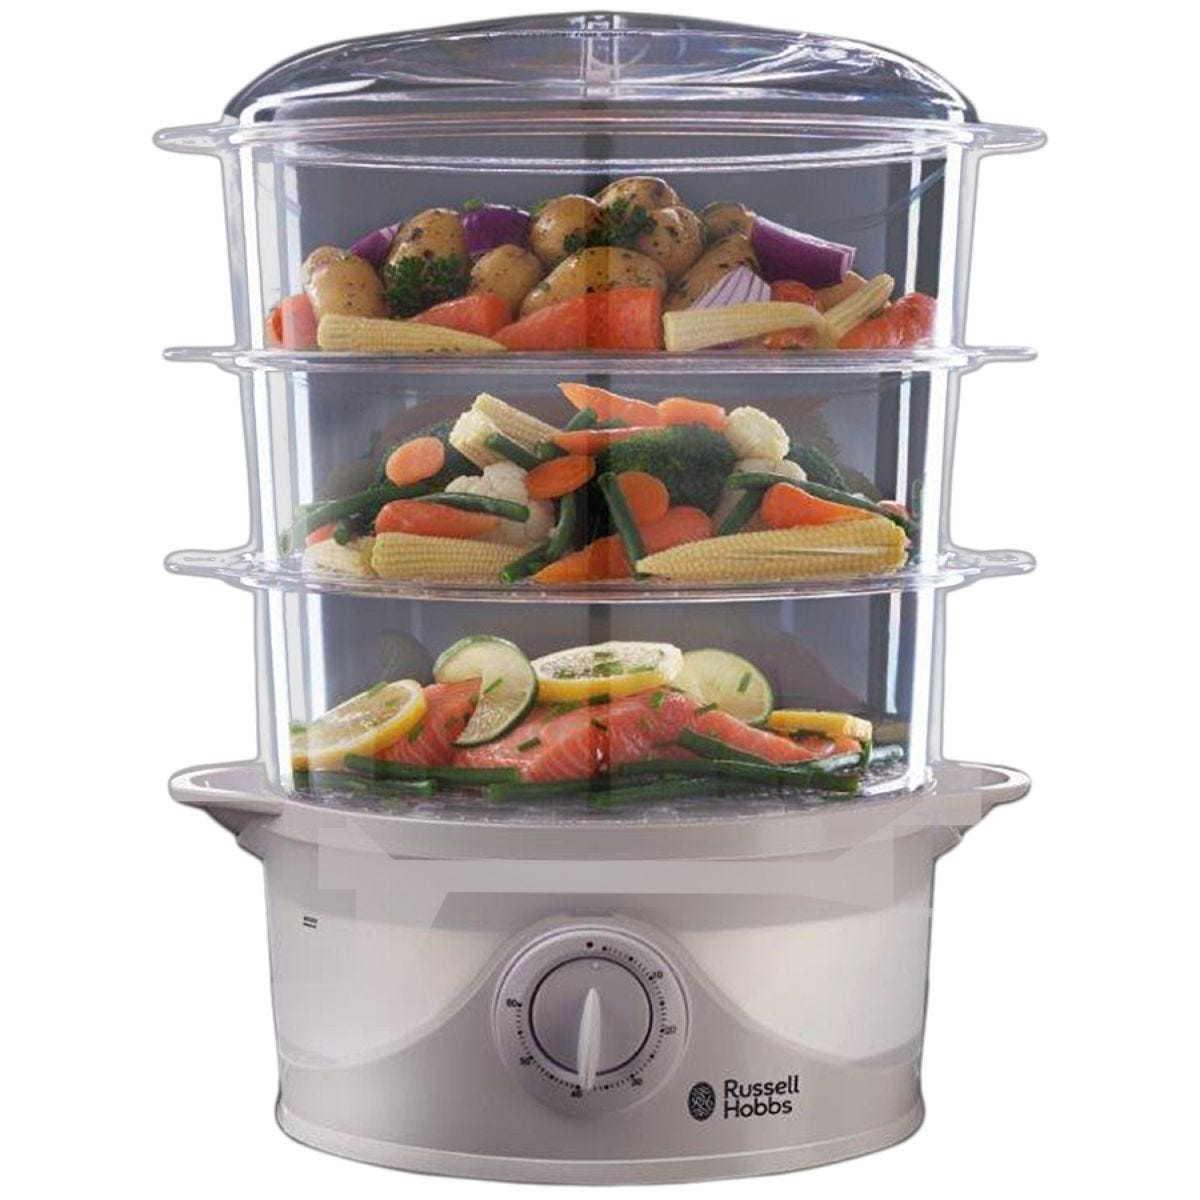 Russell Hobbs N21140 800W 3-Tier Food Steamer - White